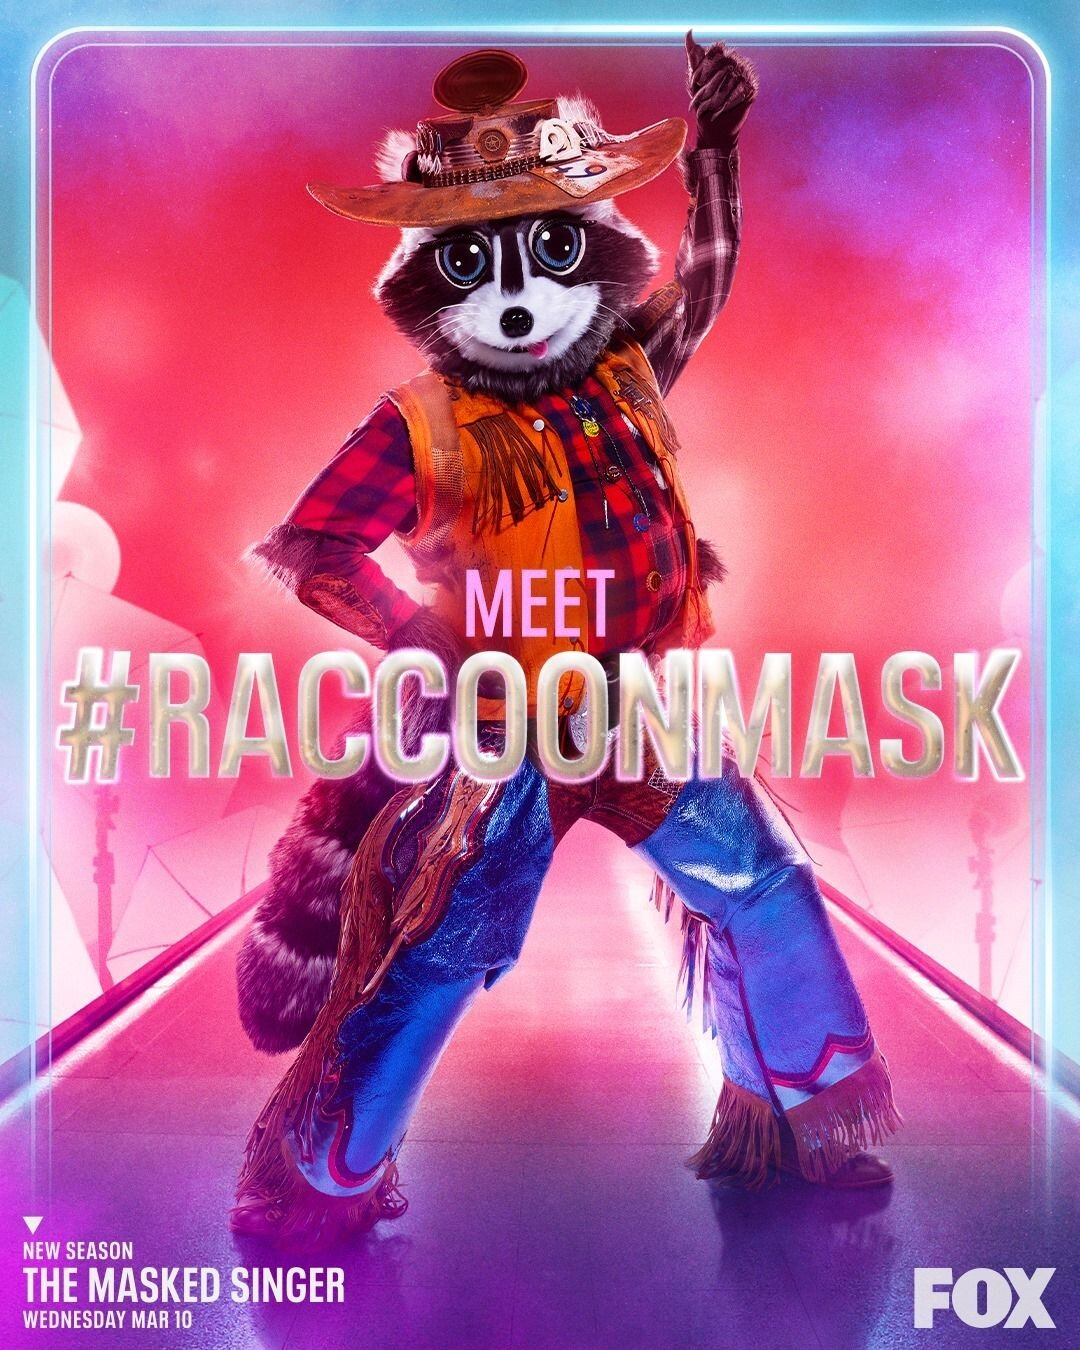 Masked Singer poster with raccoon